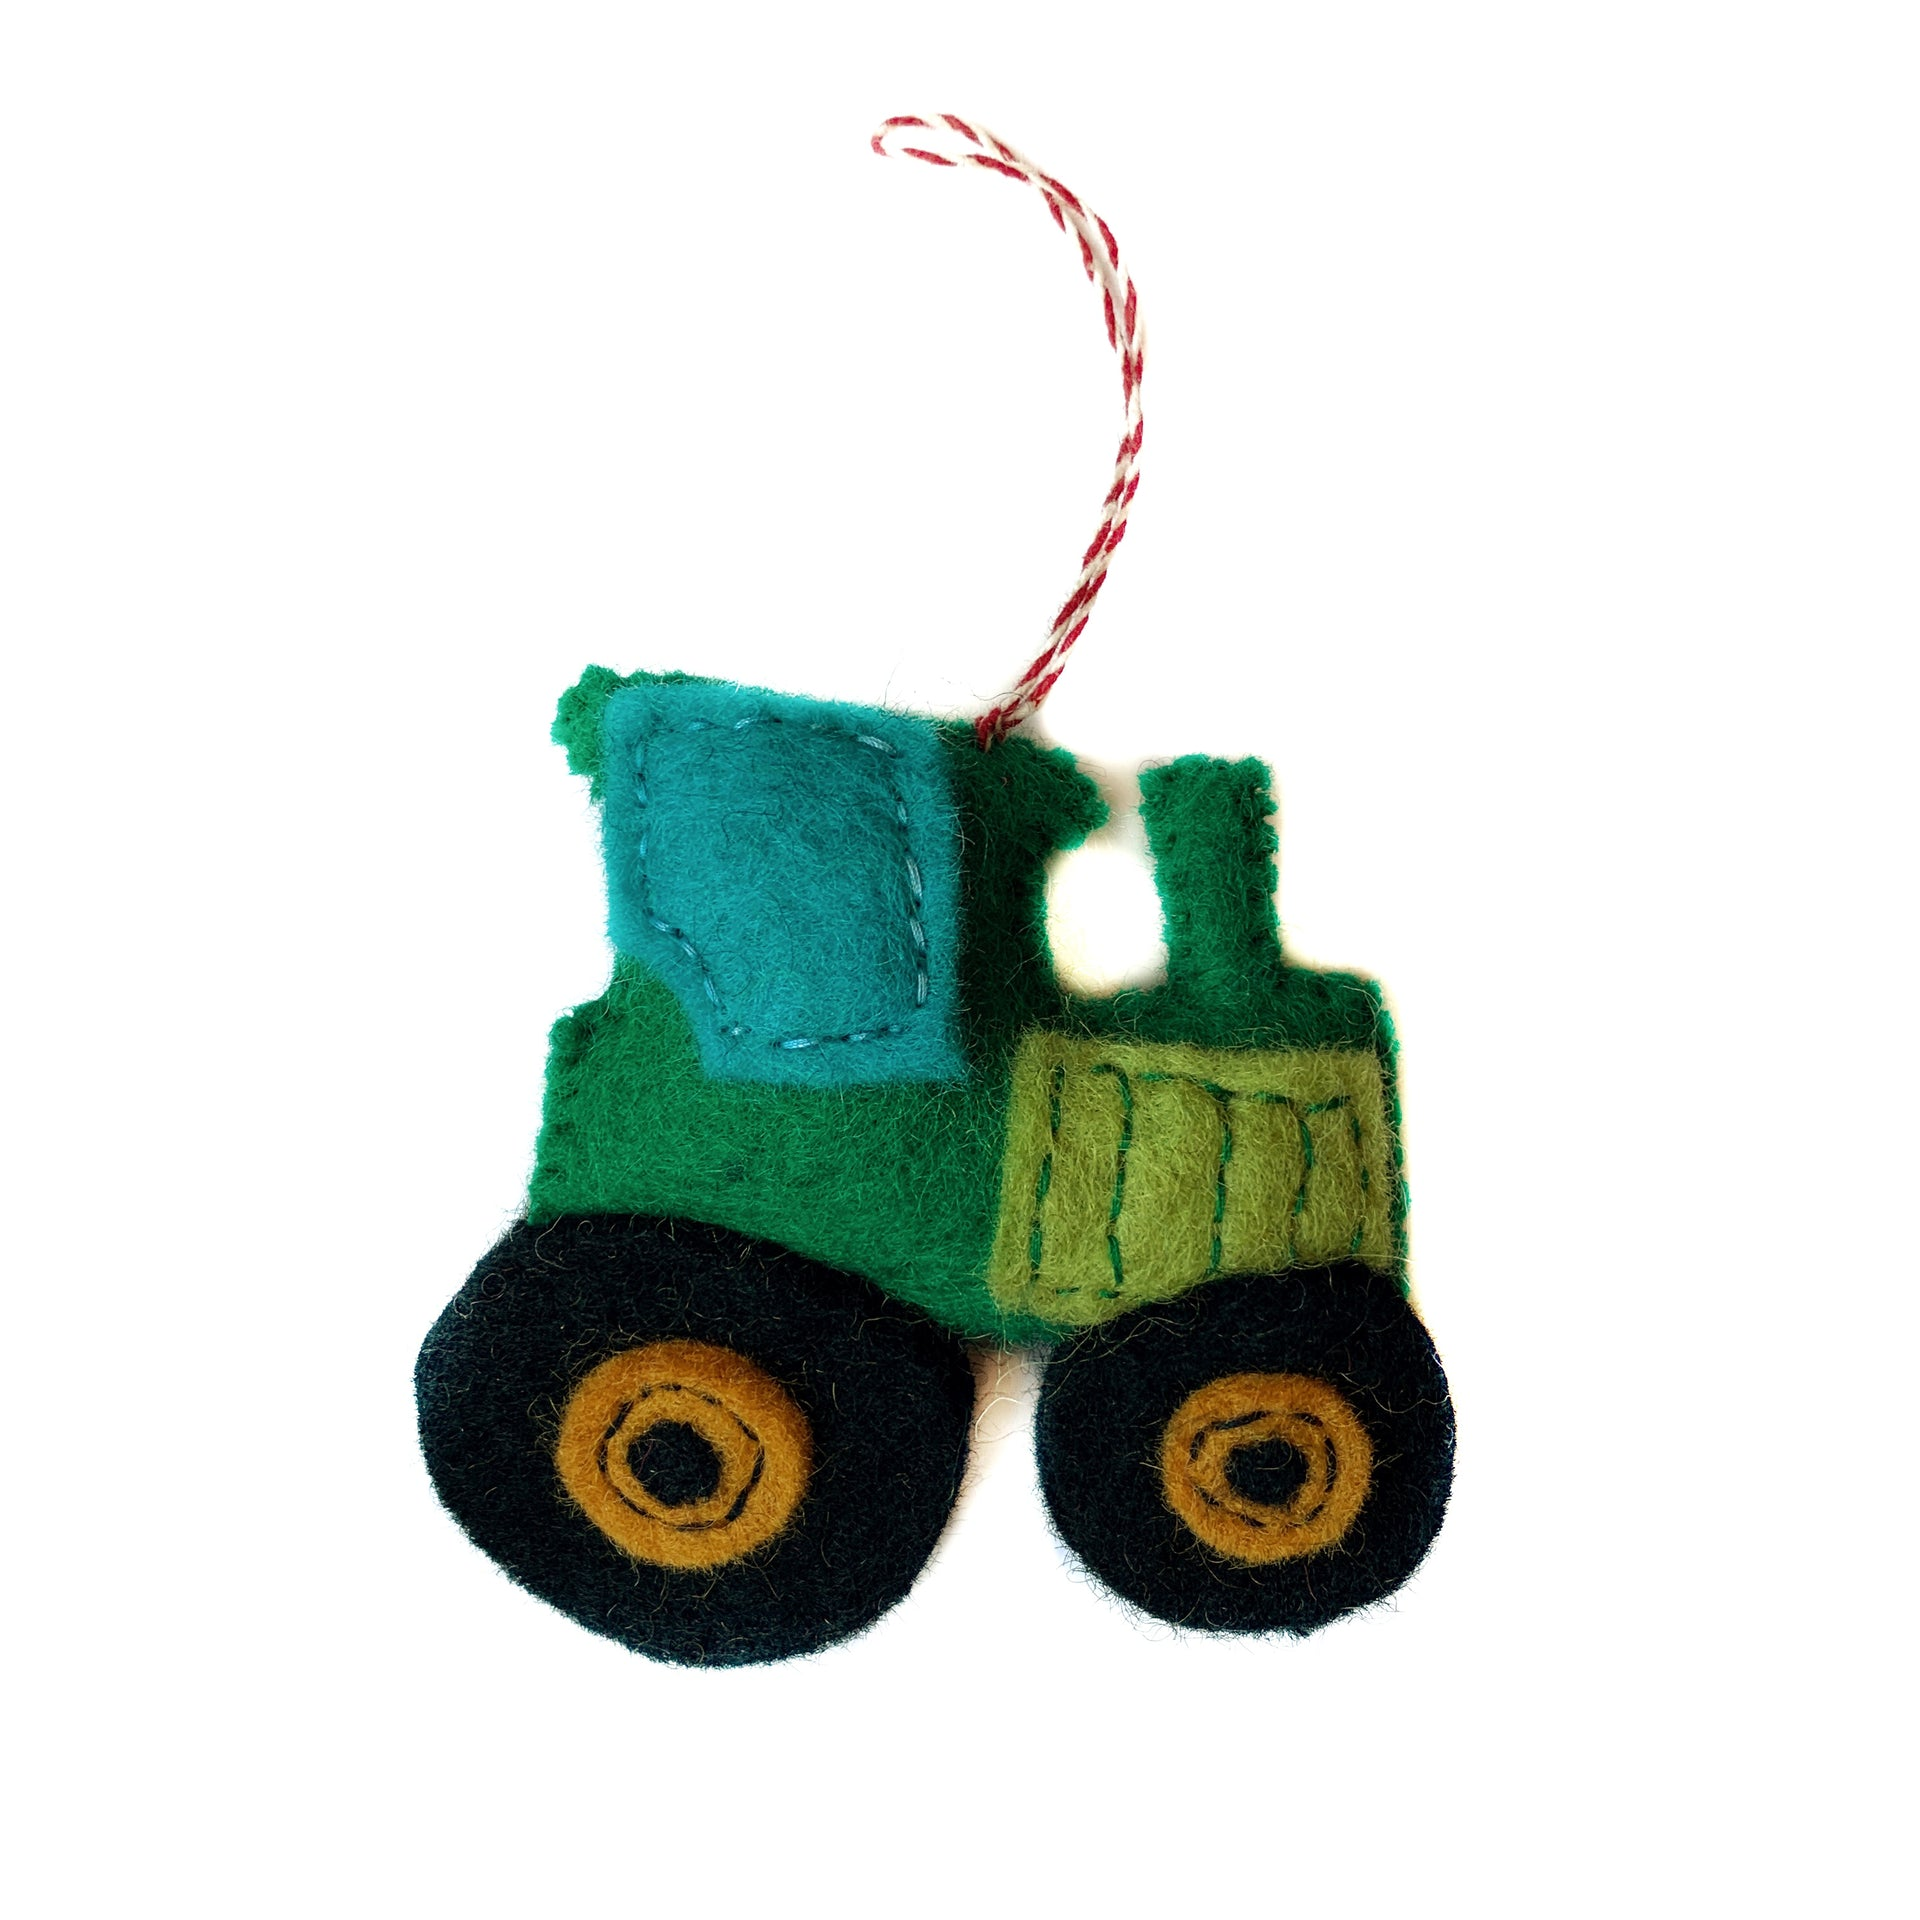 Green Tractor Christmas Ornament Felt Wool Handmade